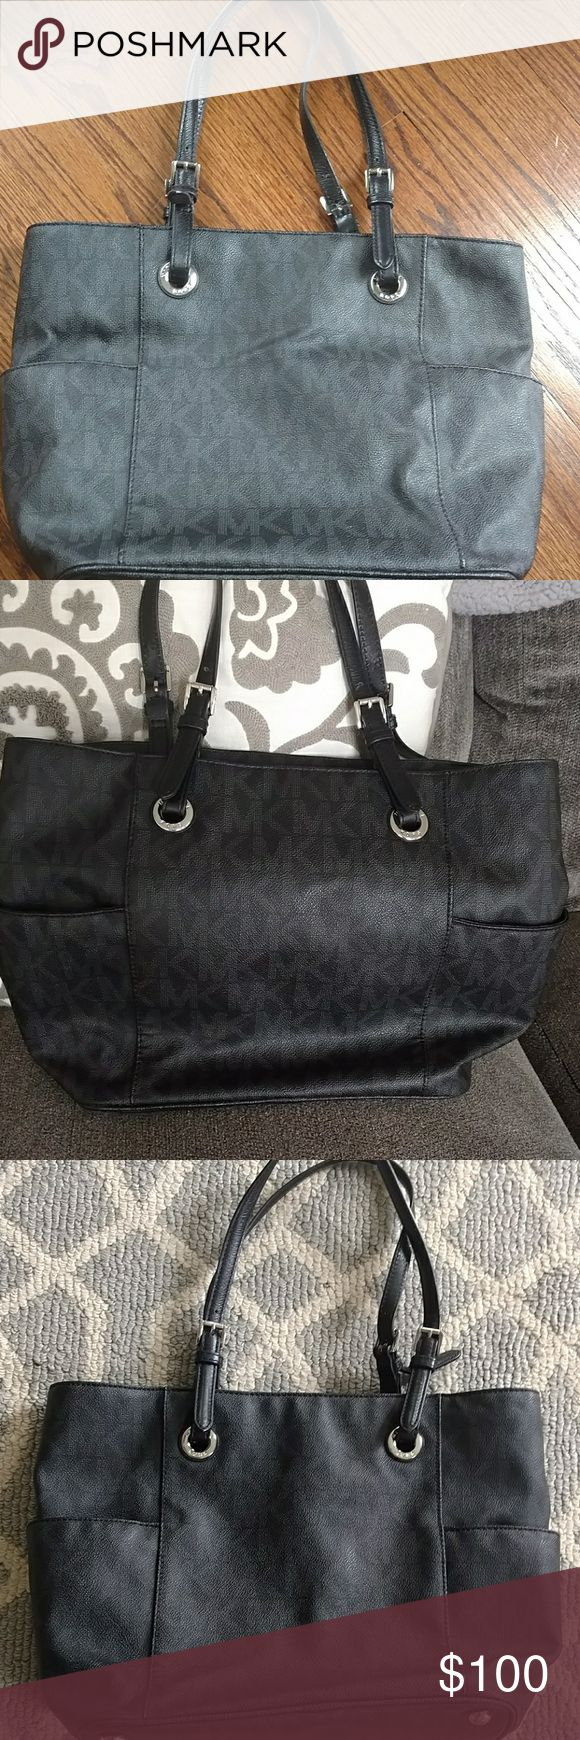 🎆Micheal Kors Lg Bag🎆 no offers pls - price fina Like new, mint condition. Michael Kors Bags Shoulder Bags